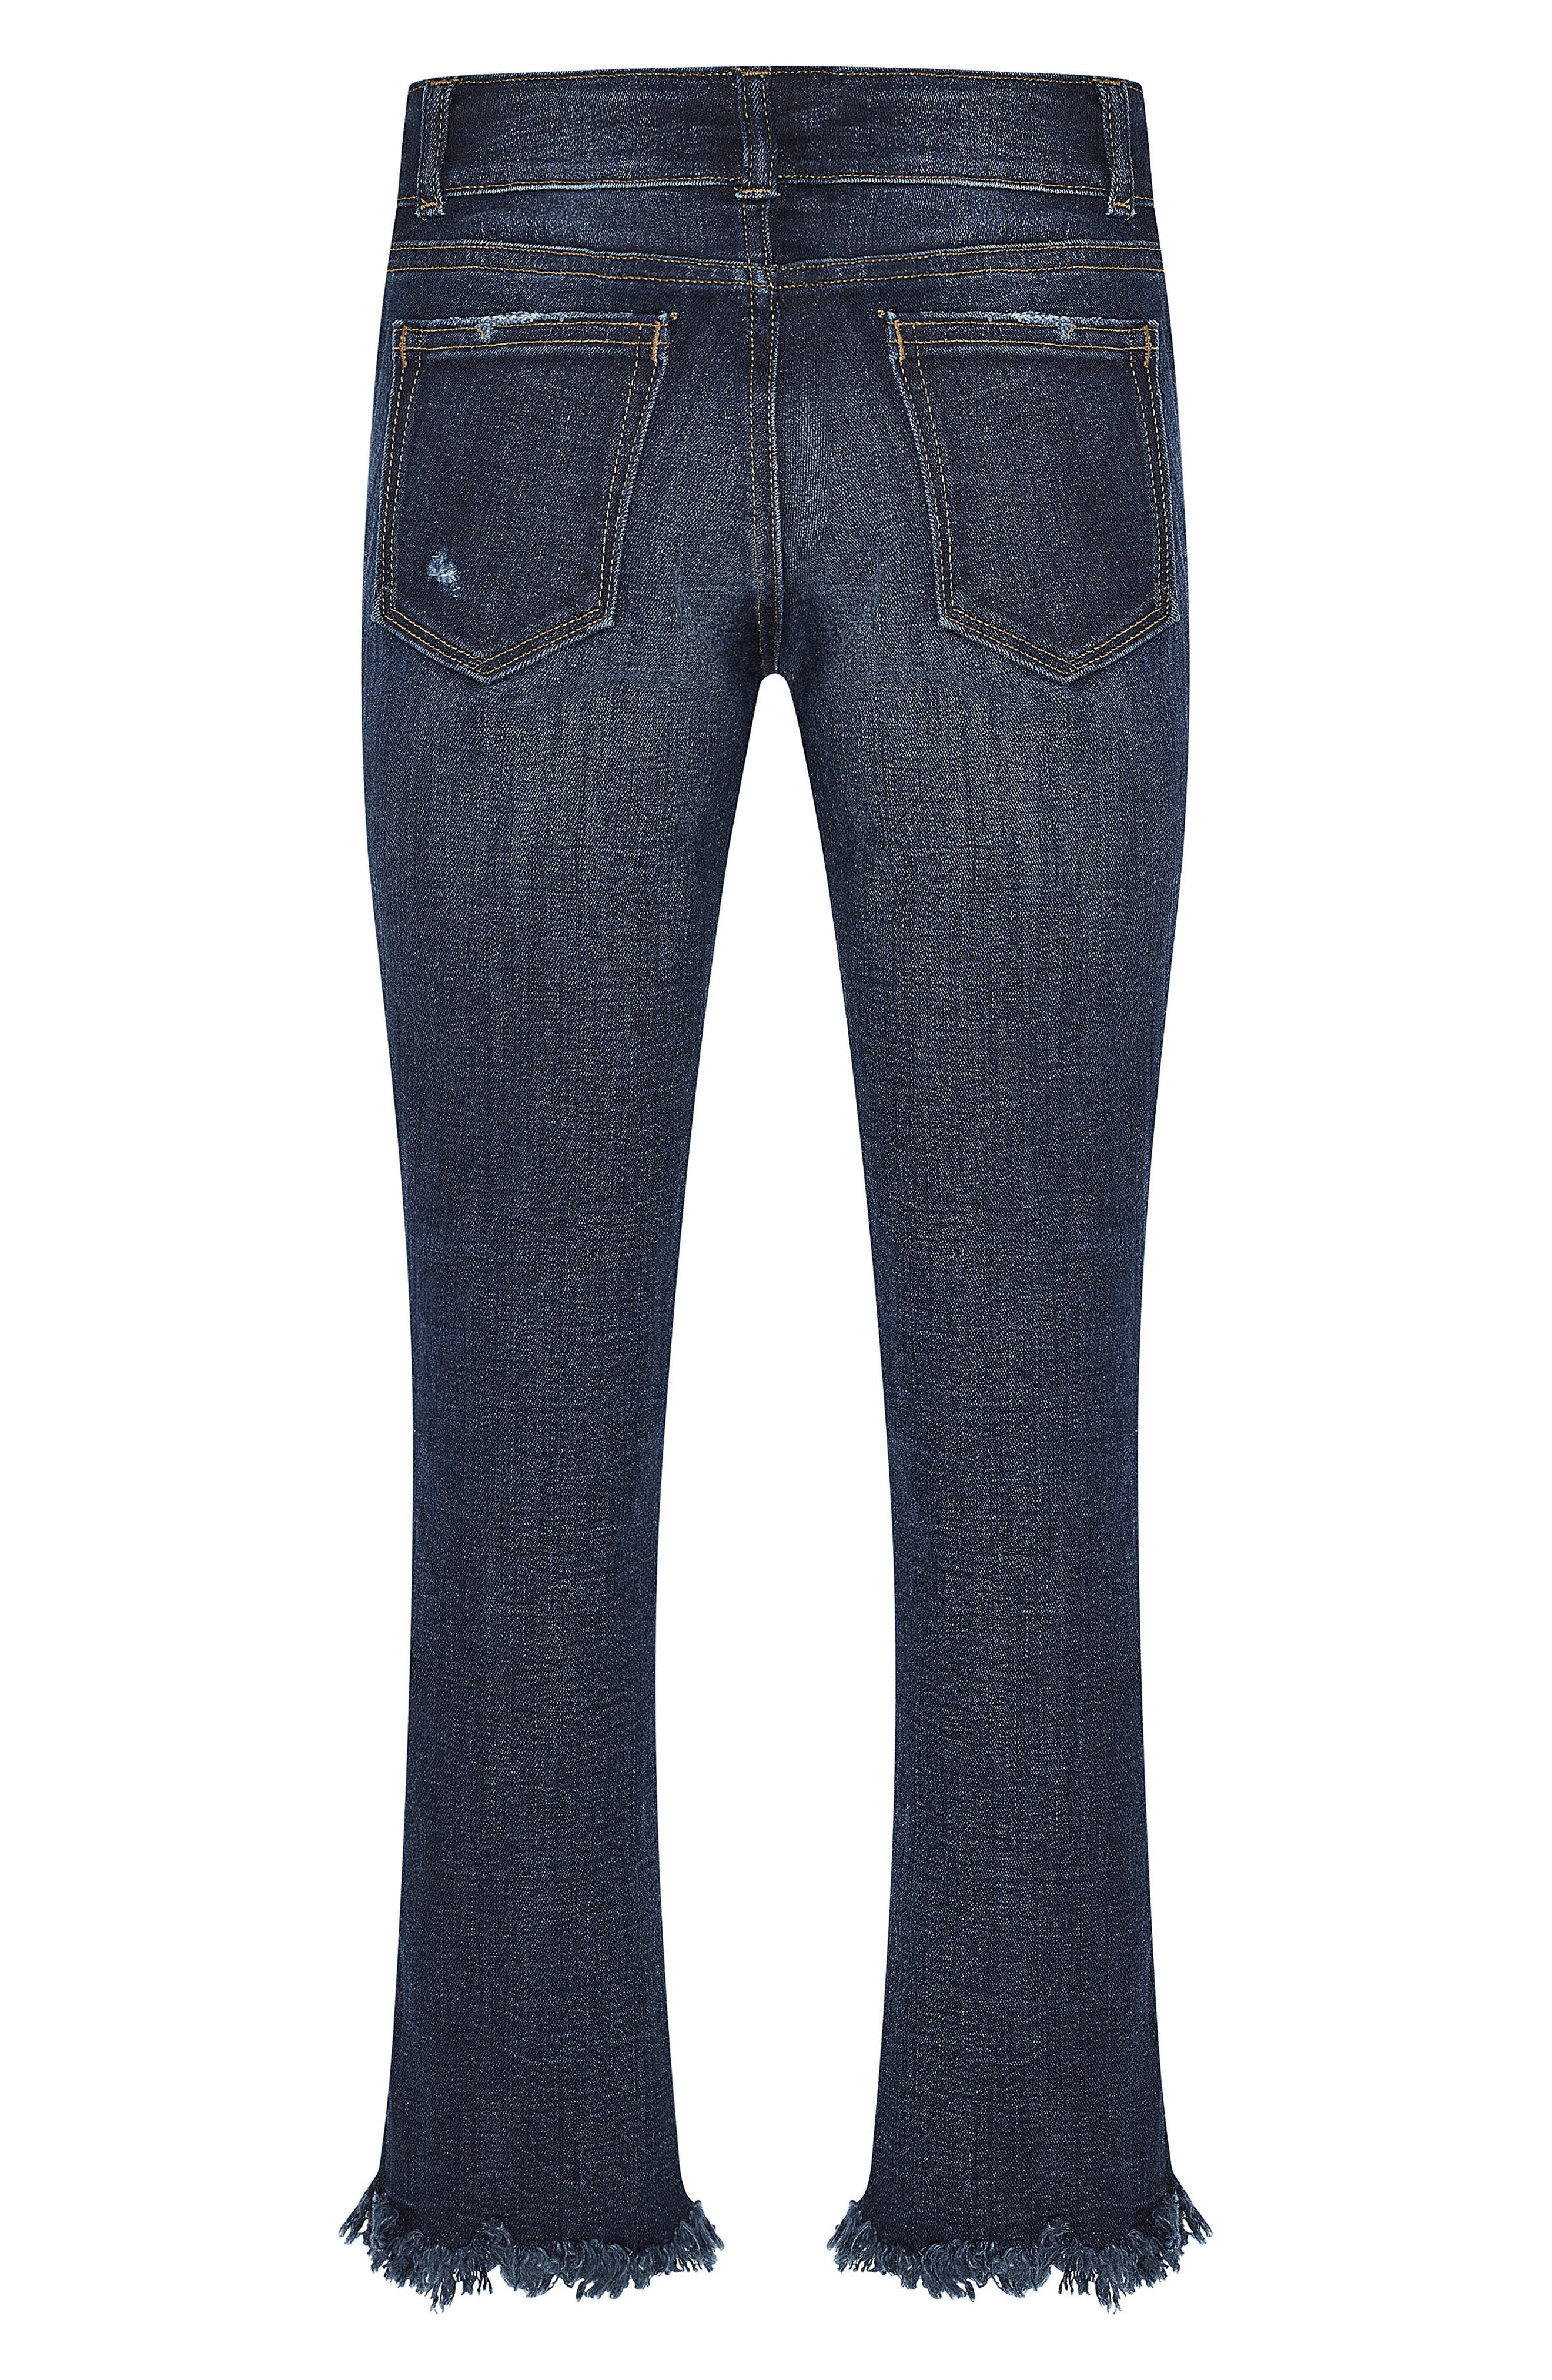 DL1916 Chloe Distressed Skinny Jeans,                         Main,                         color, 405